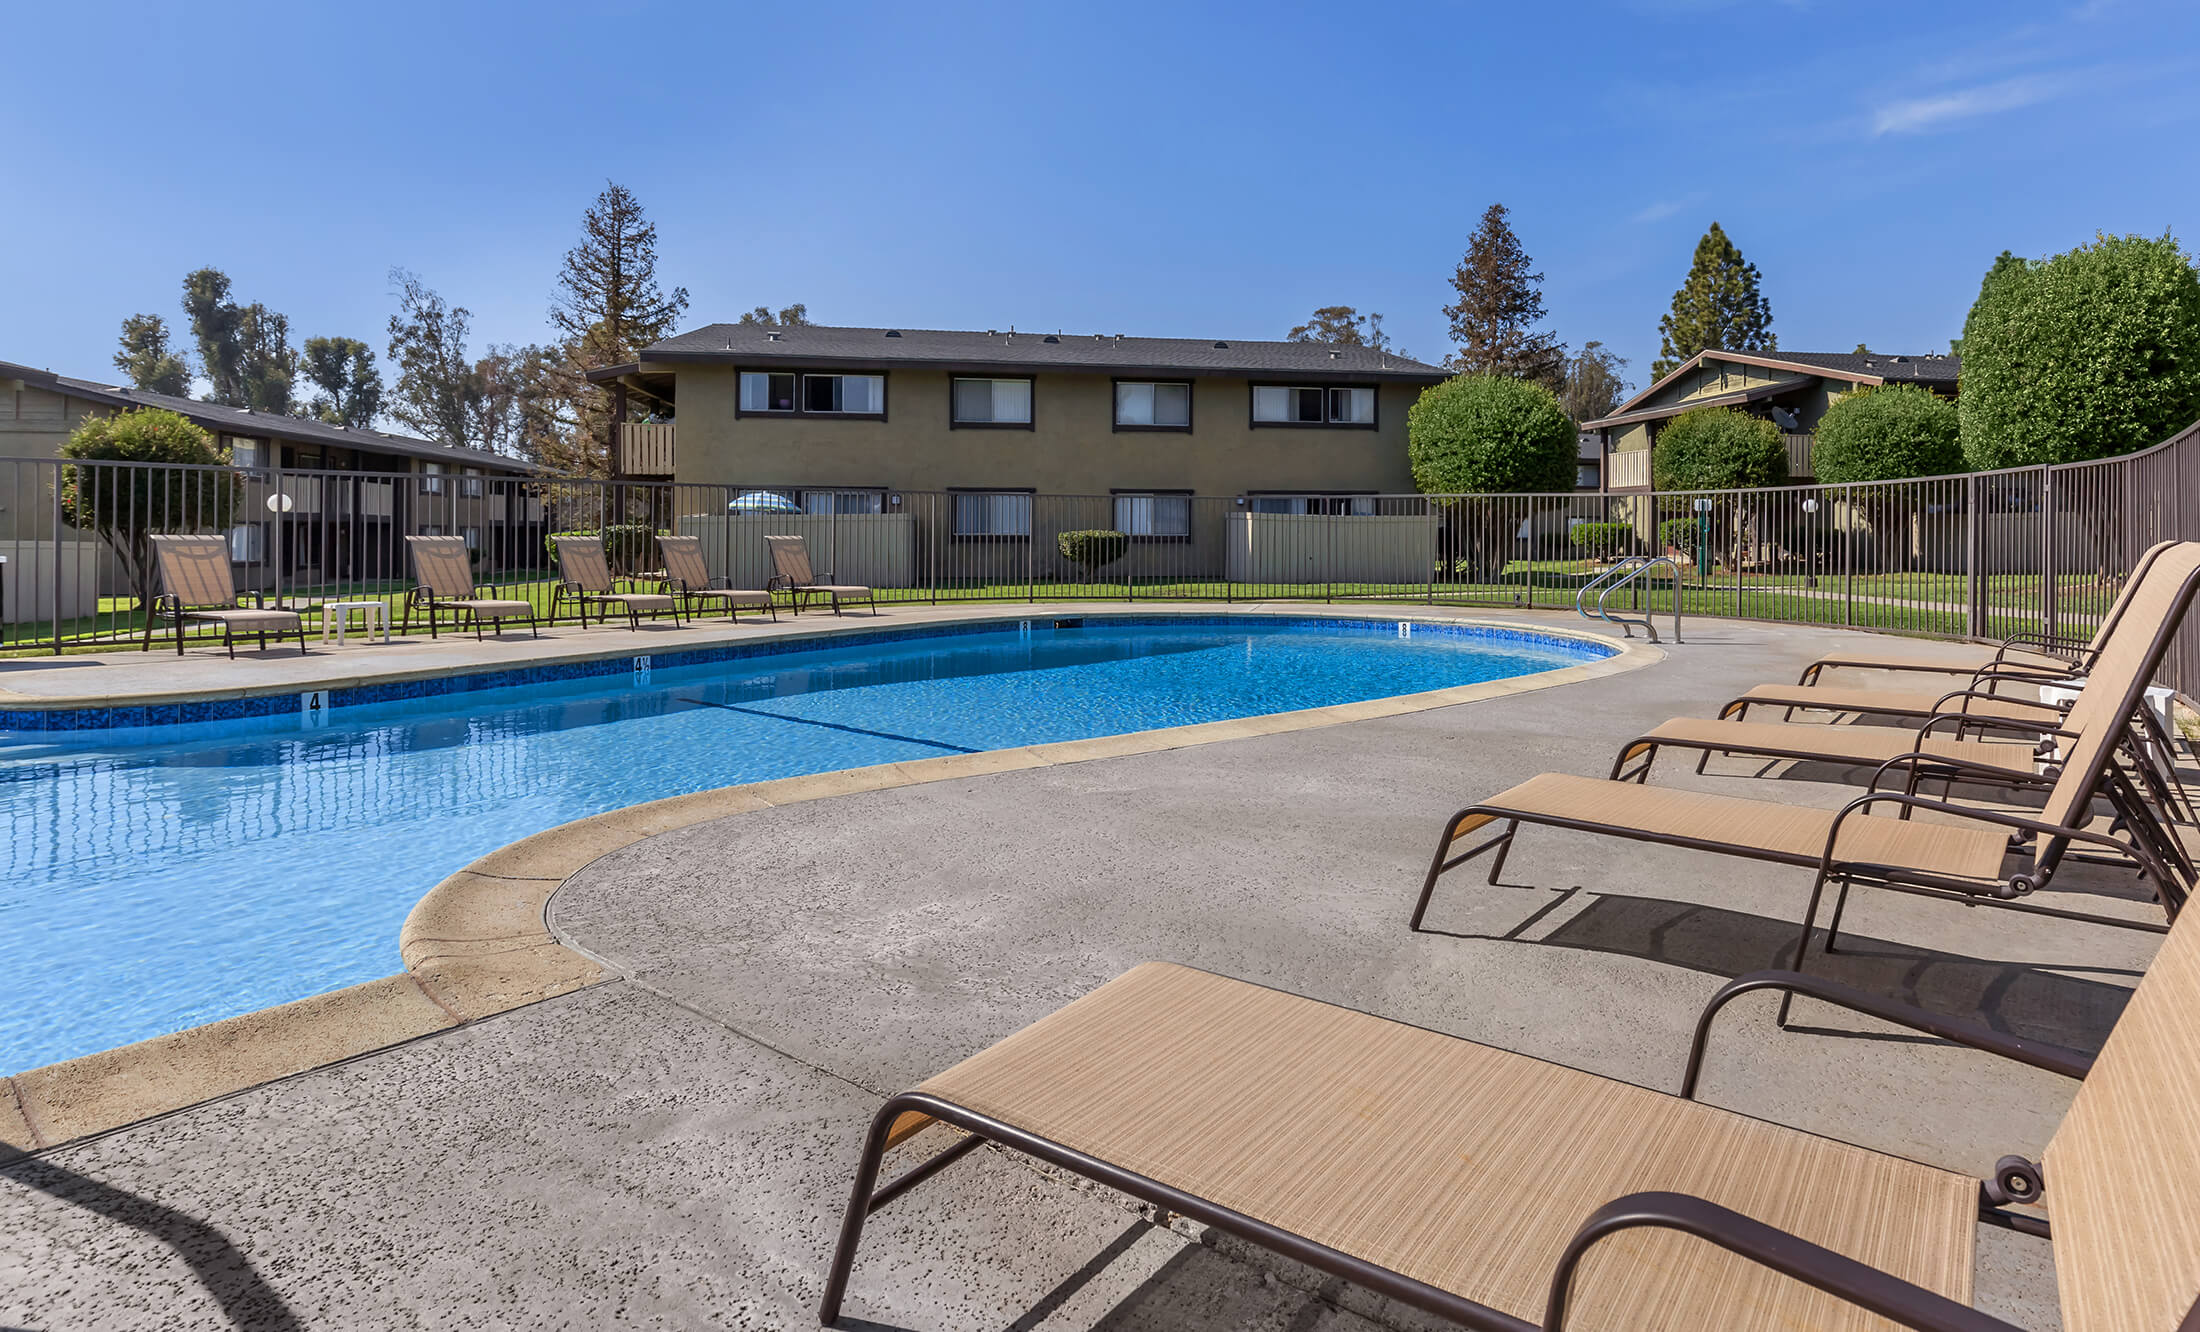 apartments in mission Viejo